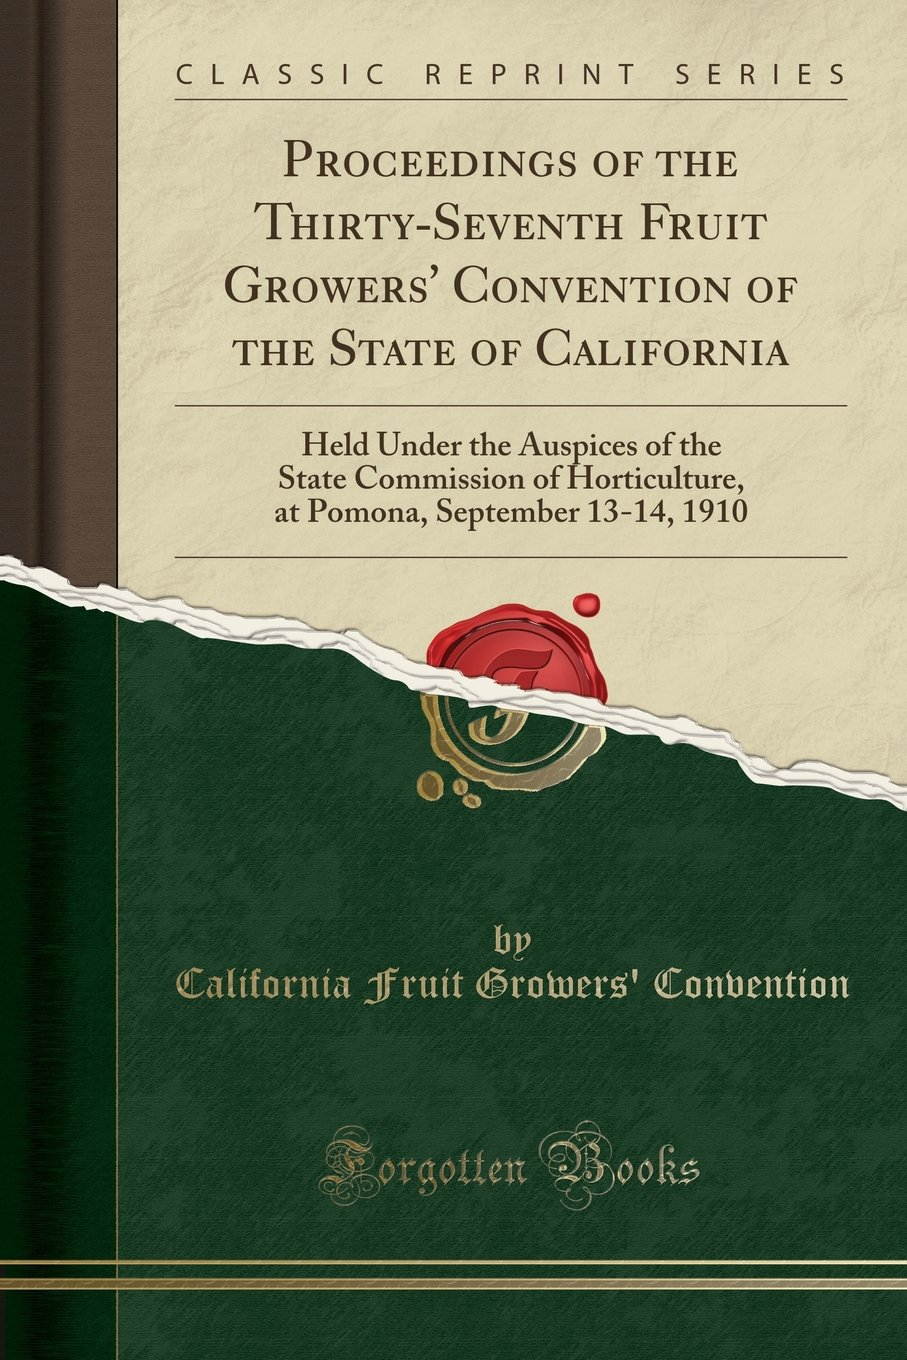 Download Proceedings of the Thirty-Seventh Fruit Growers' Convention of the State of California: Held Under the Auspices of the State Commission of ... September 13-14, 1910 (Classic Reprint) pdf epub